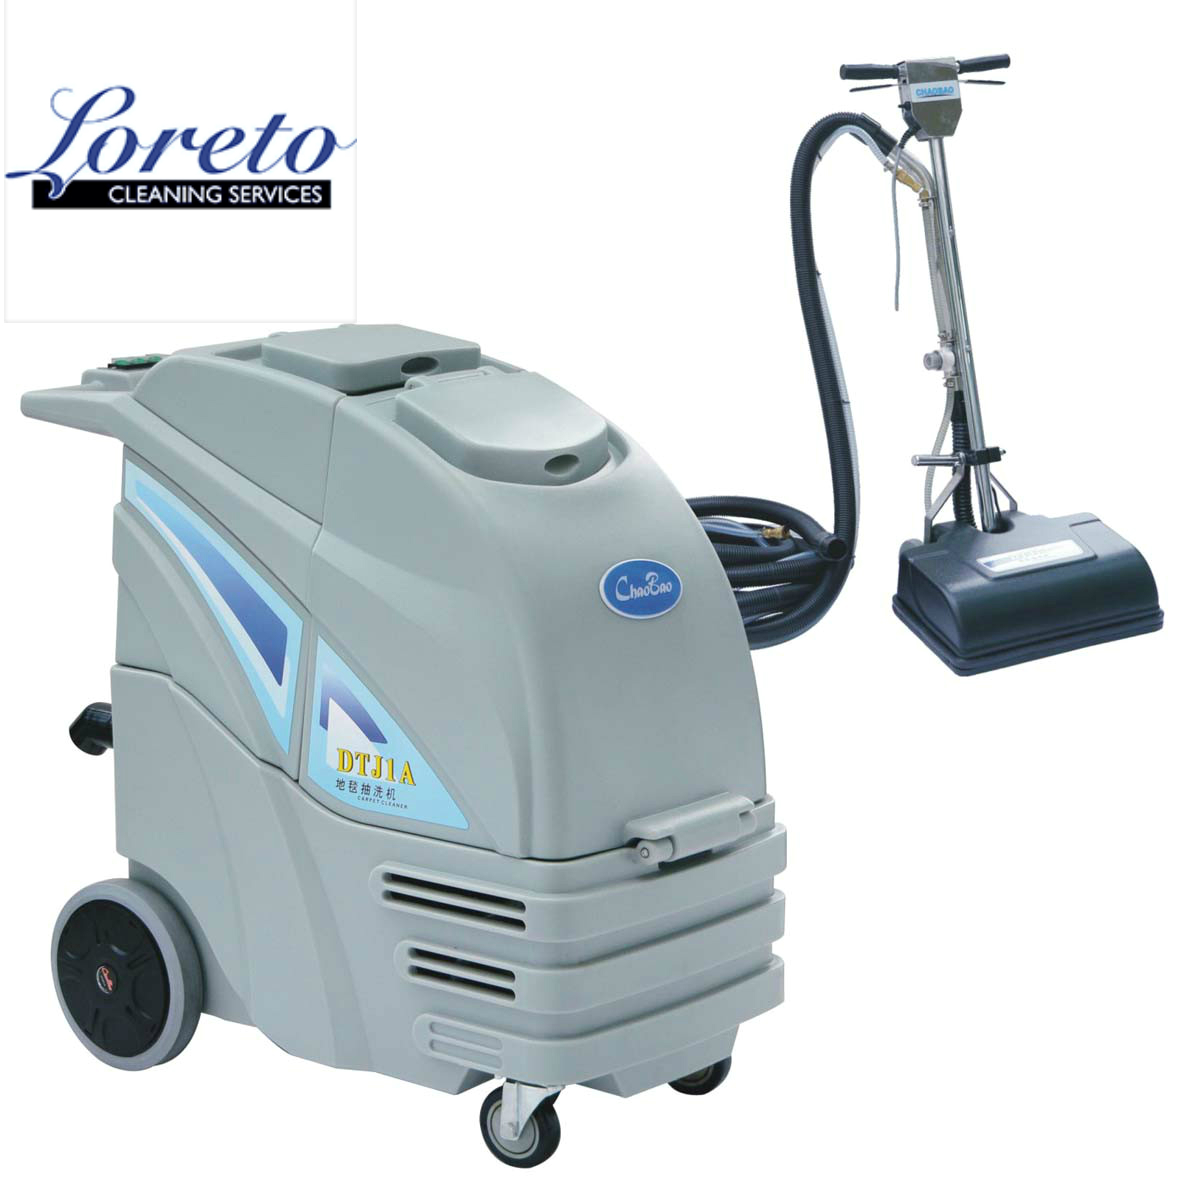 sofa cleaning machine hire what is the best bed home carpet machines